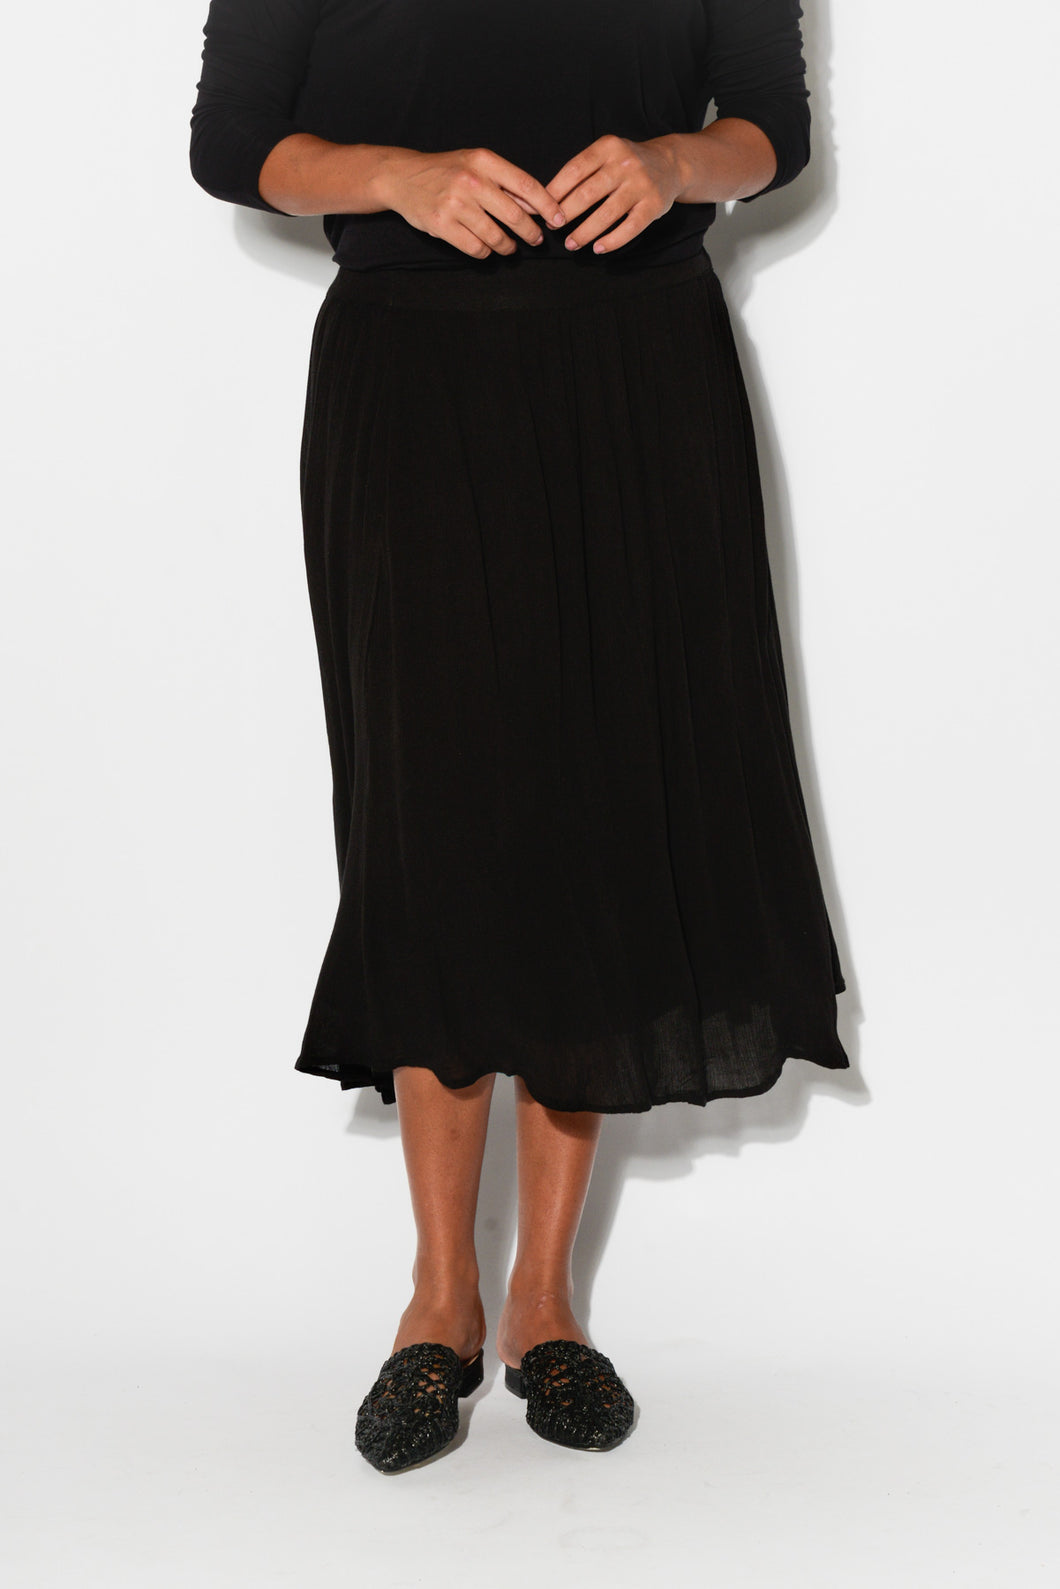 Gretel Black Crinkle Skirt - Blue Bungalow